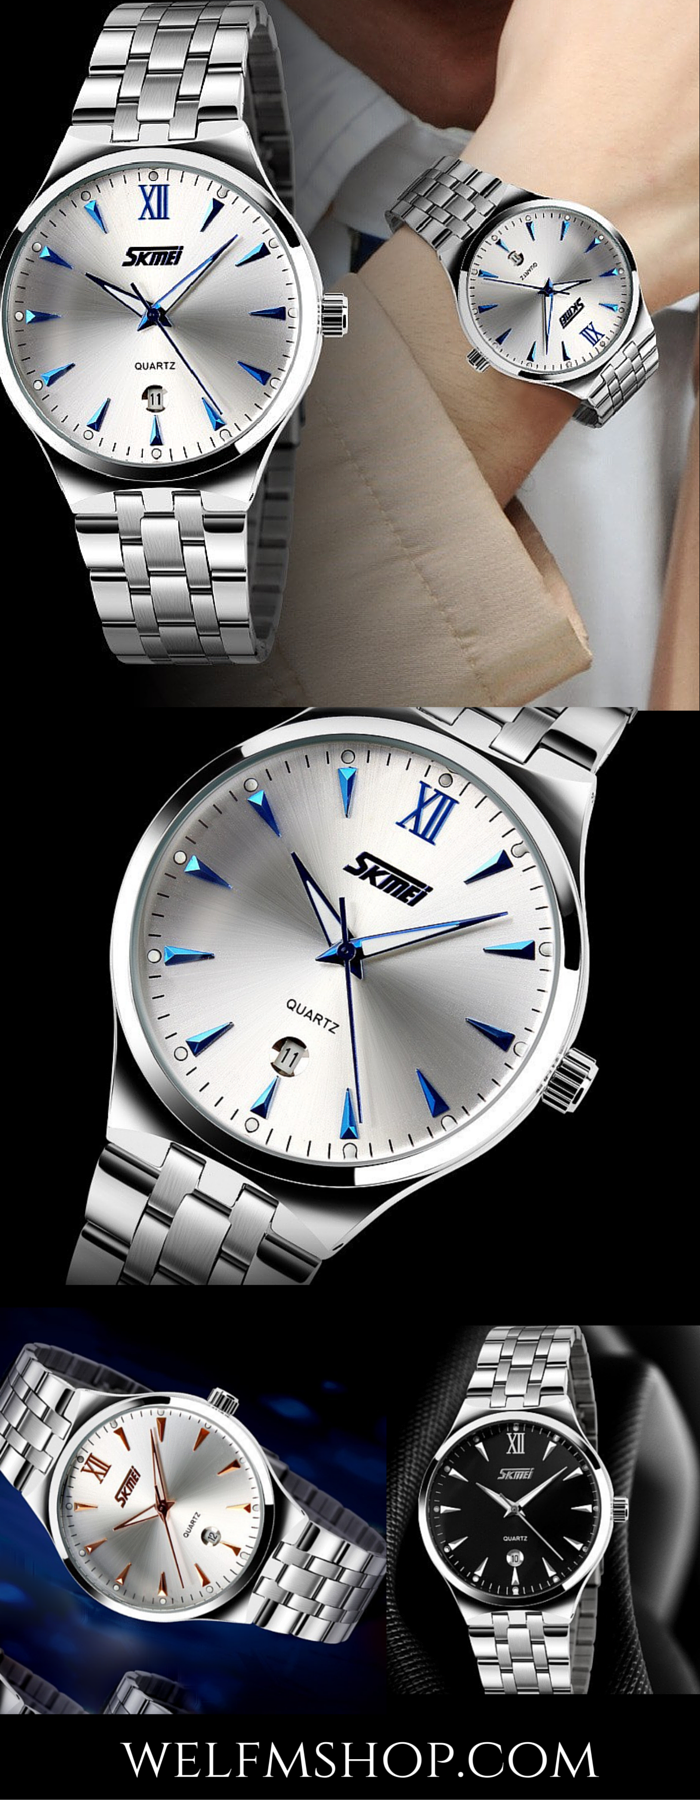 Are you looking for a Christmas gift for your man? This man's stainless steel sports watch is both sophisticated and casual at the same time. The price is great and with free shipping you can't go wrong.